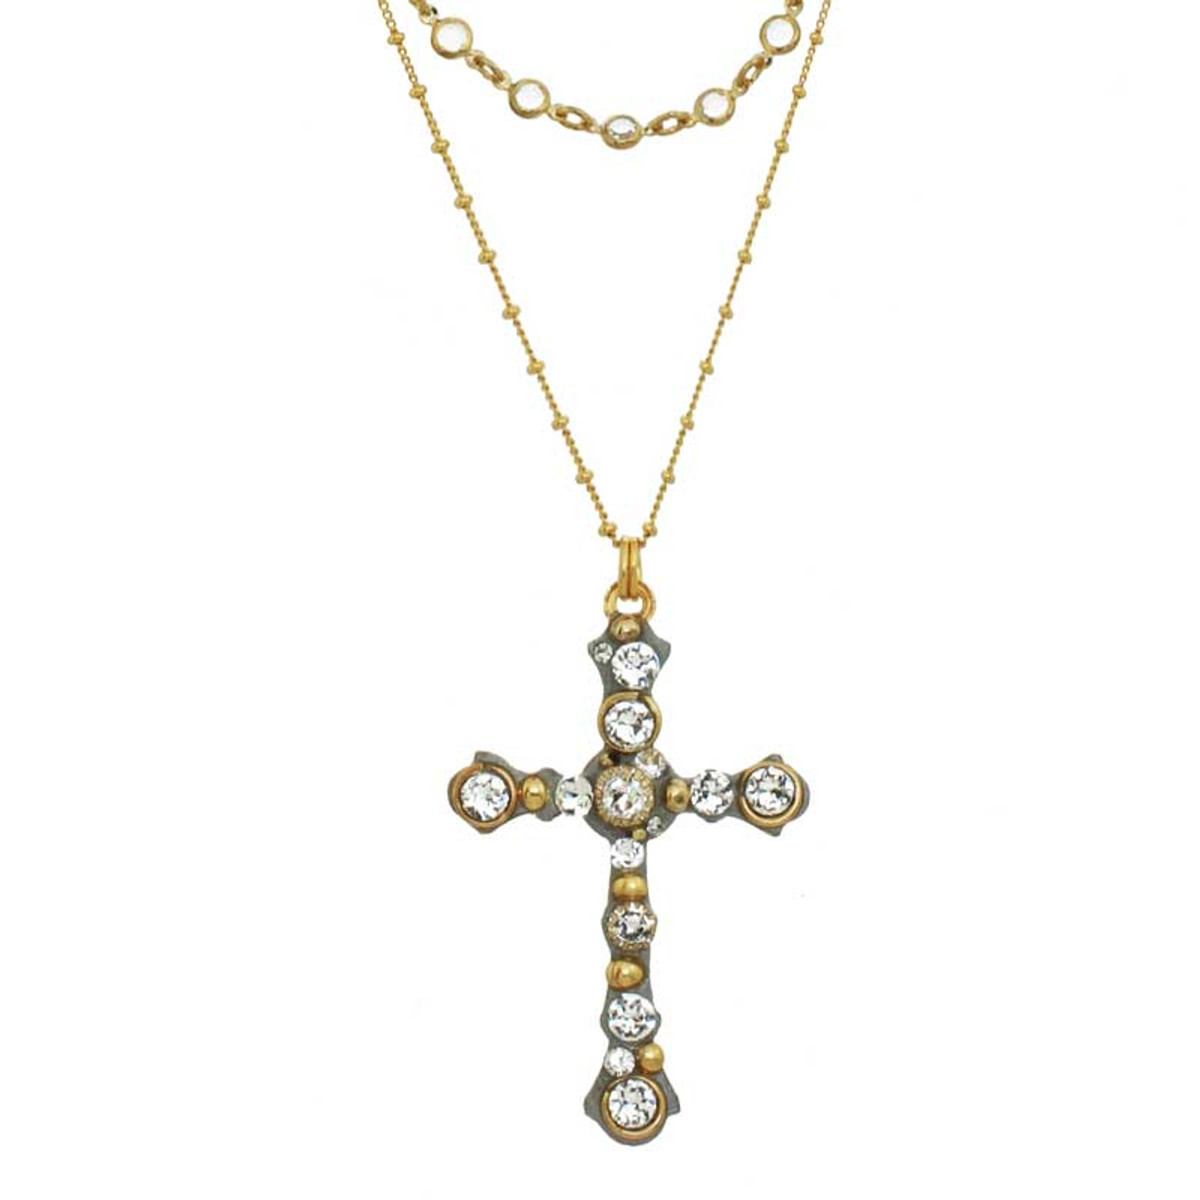 Gold Michal Golan Jewelry Icicle Style Necklaces